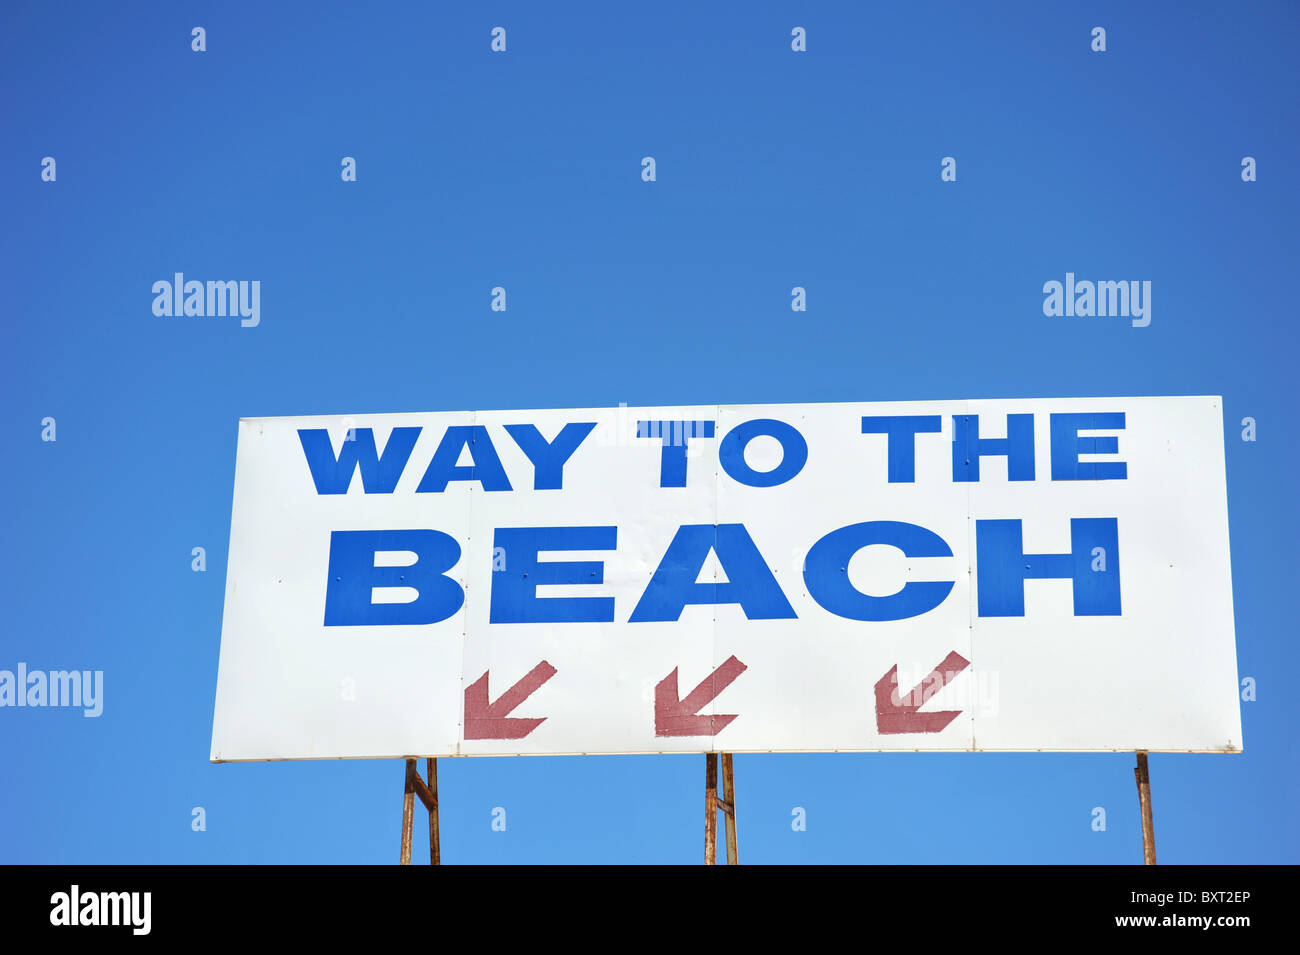 Sign directing people to the beach - Stock Image